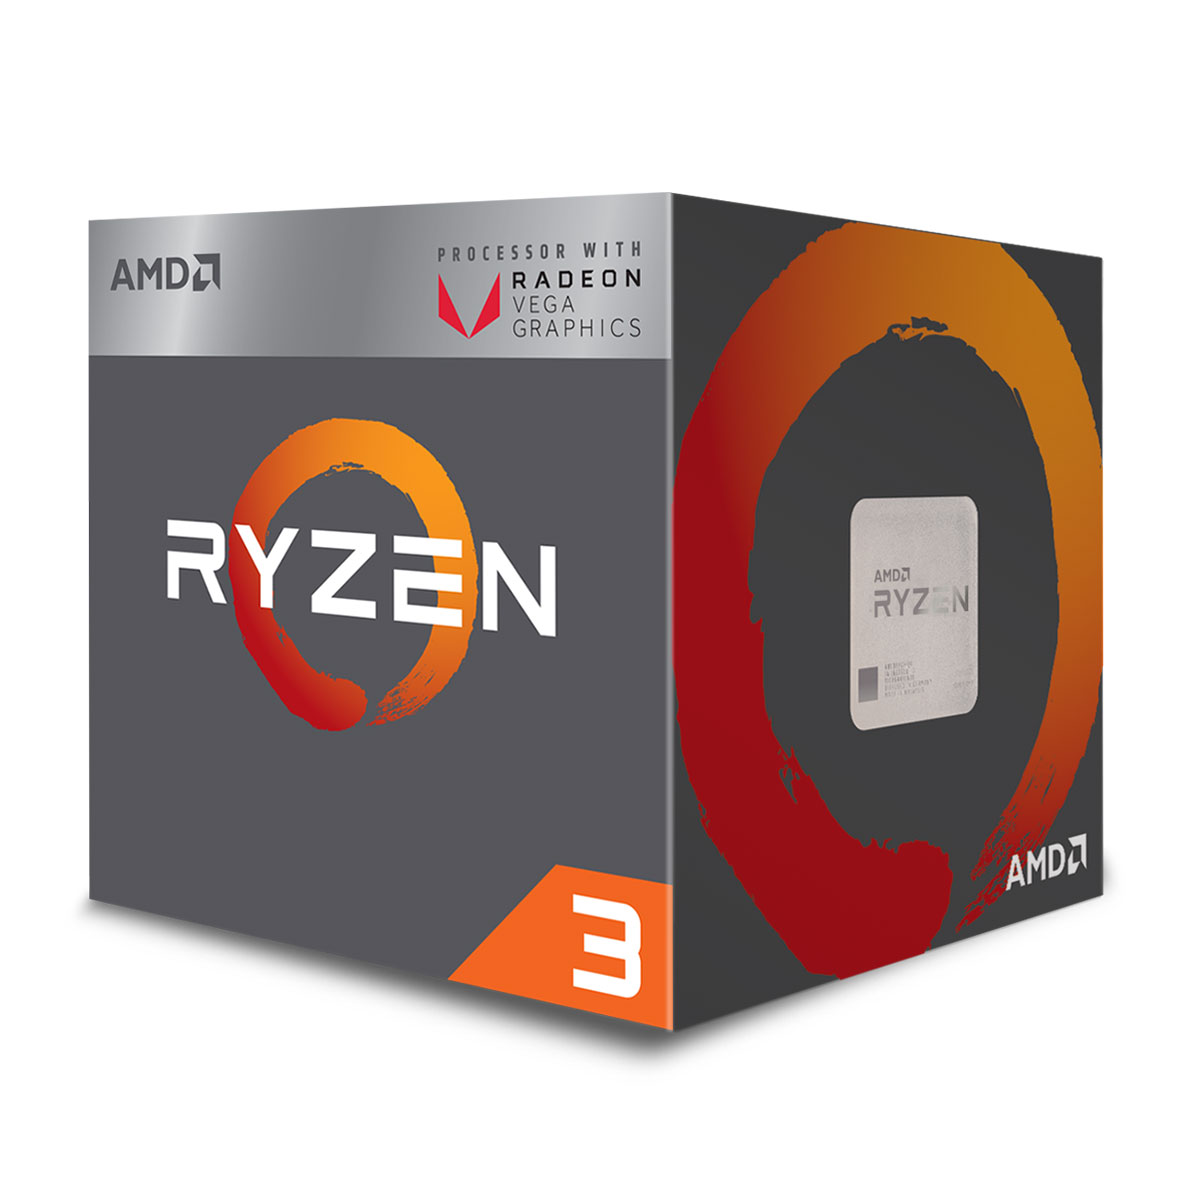 Processeur AMD 4 Core/4 Threads Socket AM4 Ryzen 3 2200G 6 Mo (Boîte, informatique ile de la Réunion, informatique-reunion.com